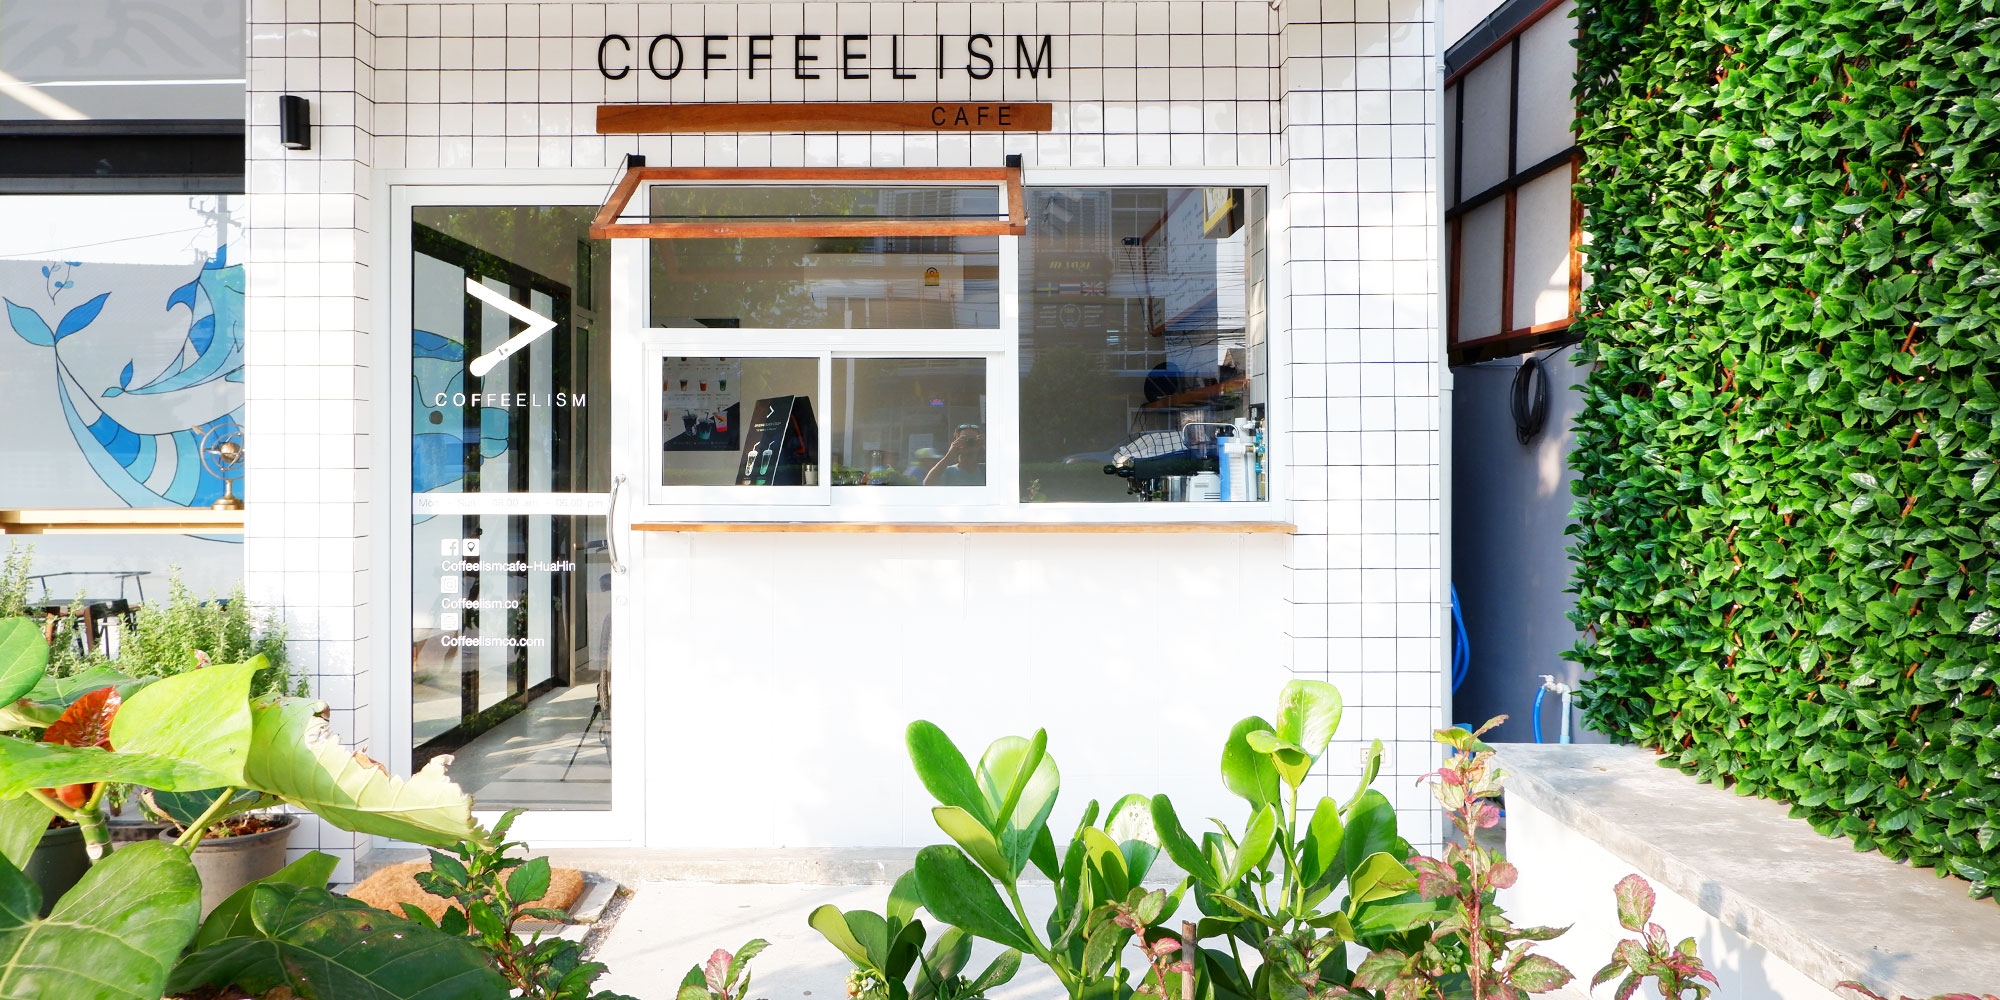 Coffeelism | Another Great Coffee Shop | Hua Hin | Thailand